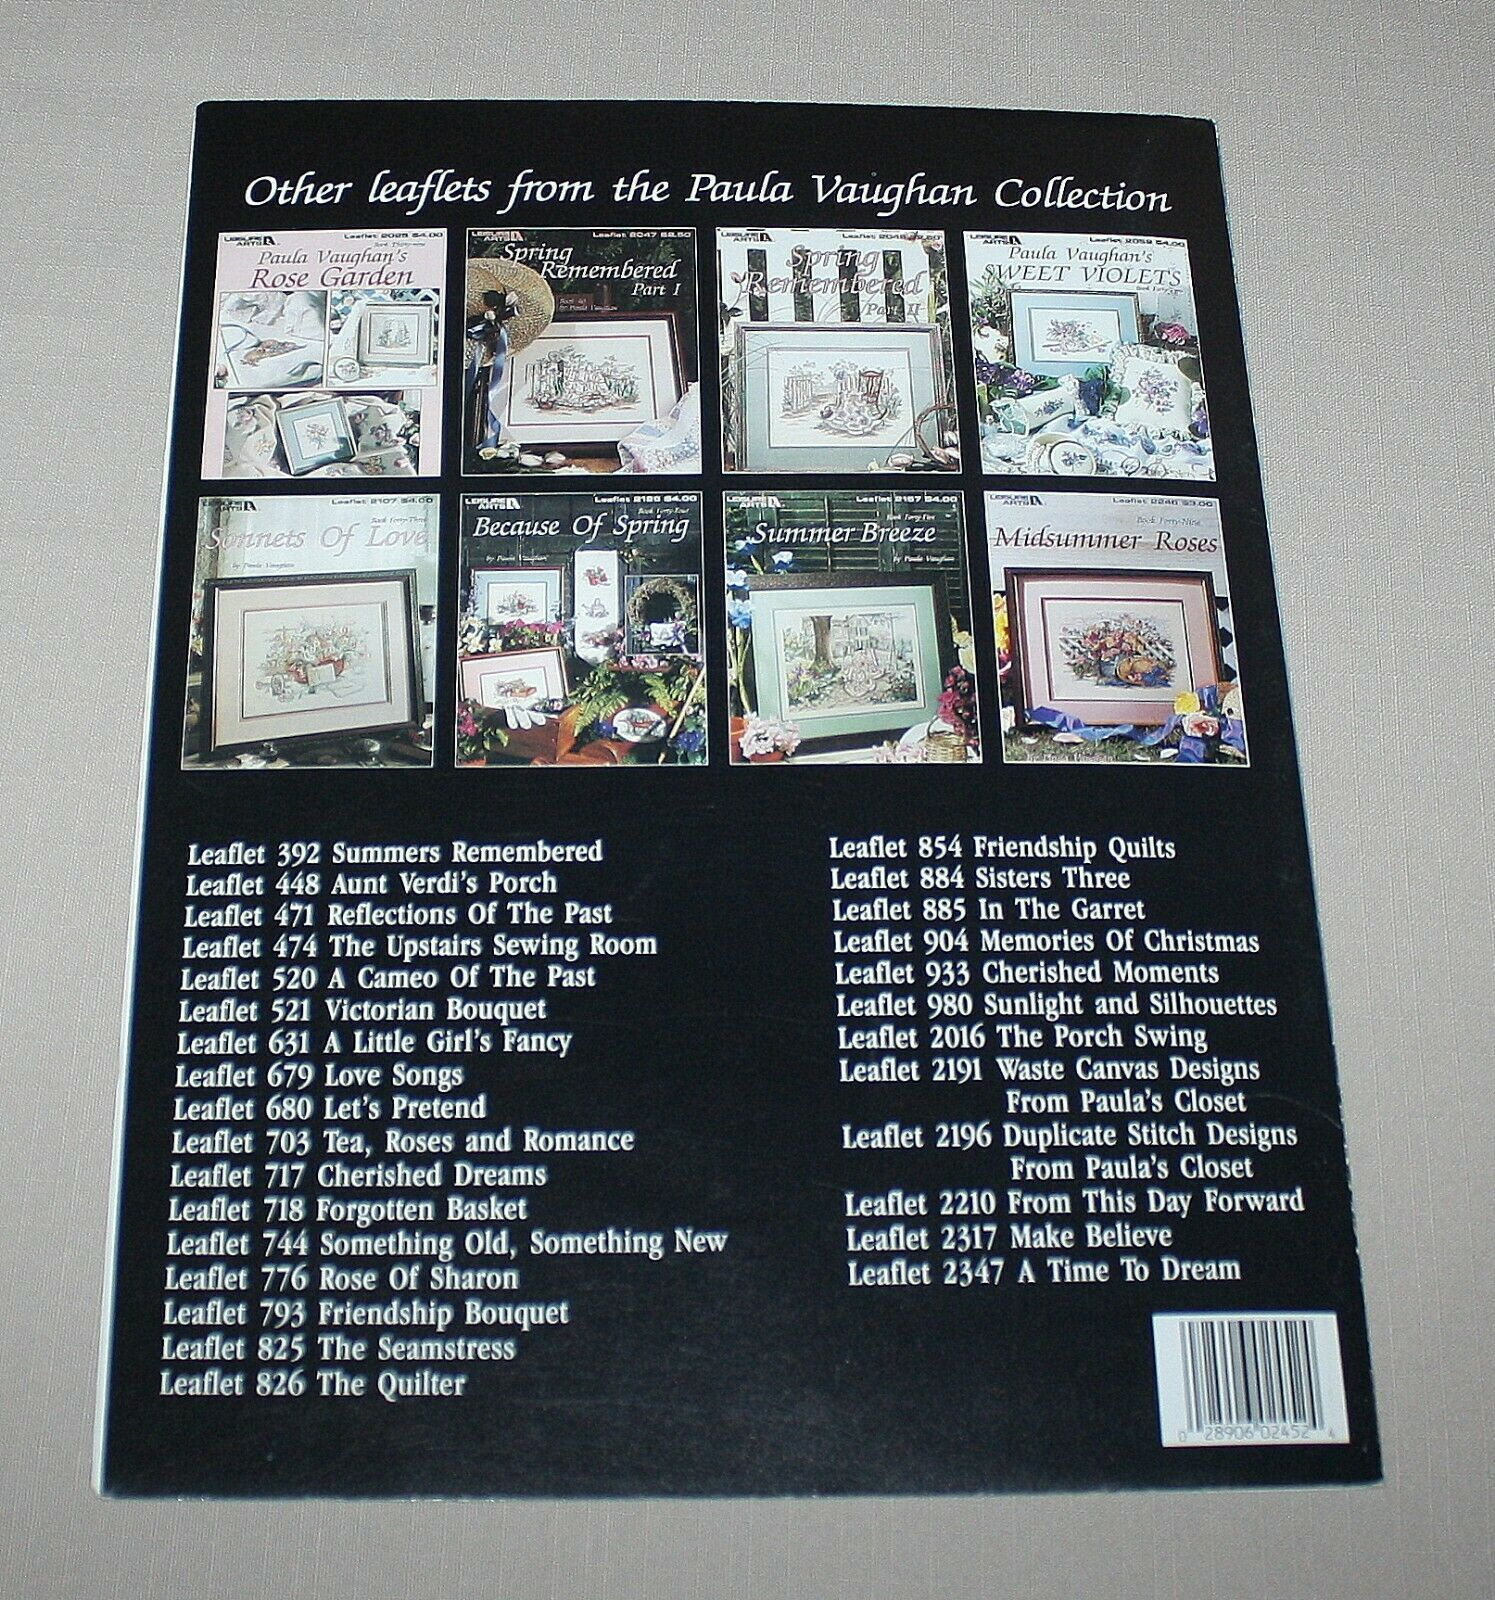 Garden Party Leisure Arts 2452 Cross Stitch Pattern Book 52 Paula Vaughan